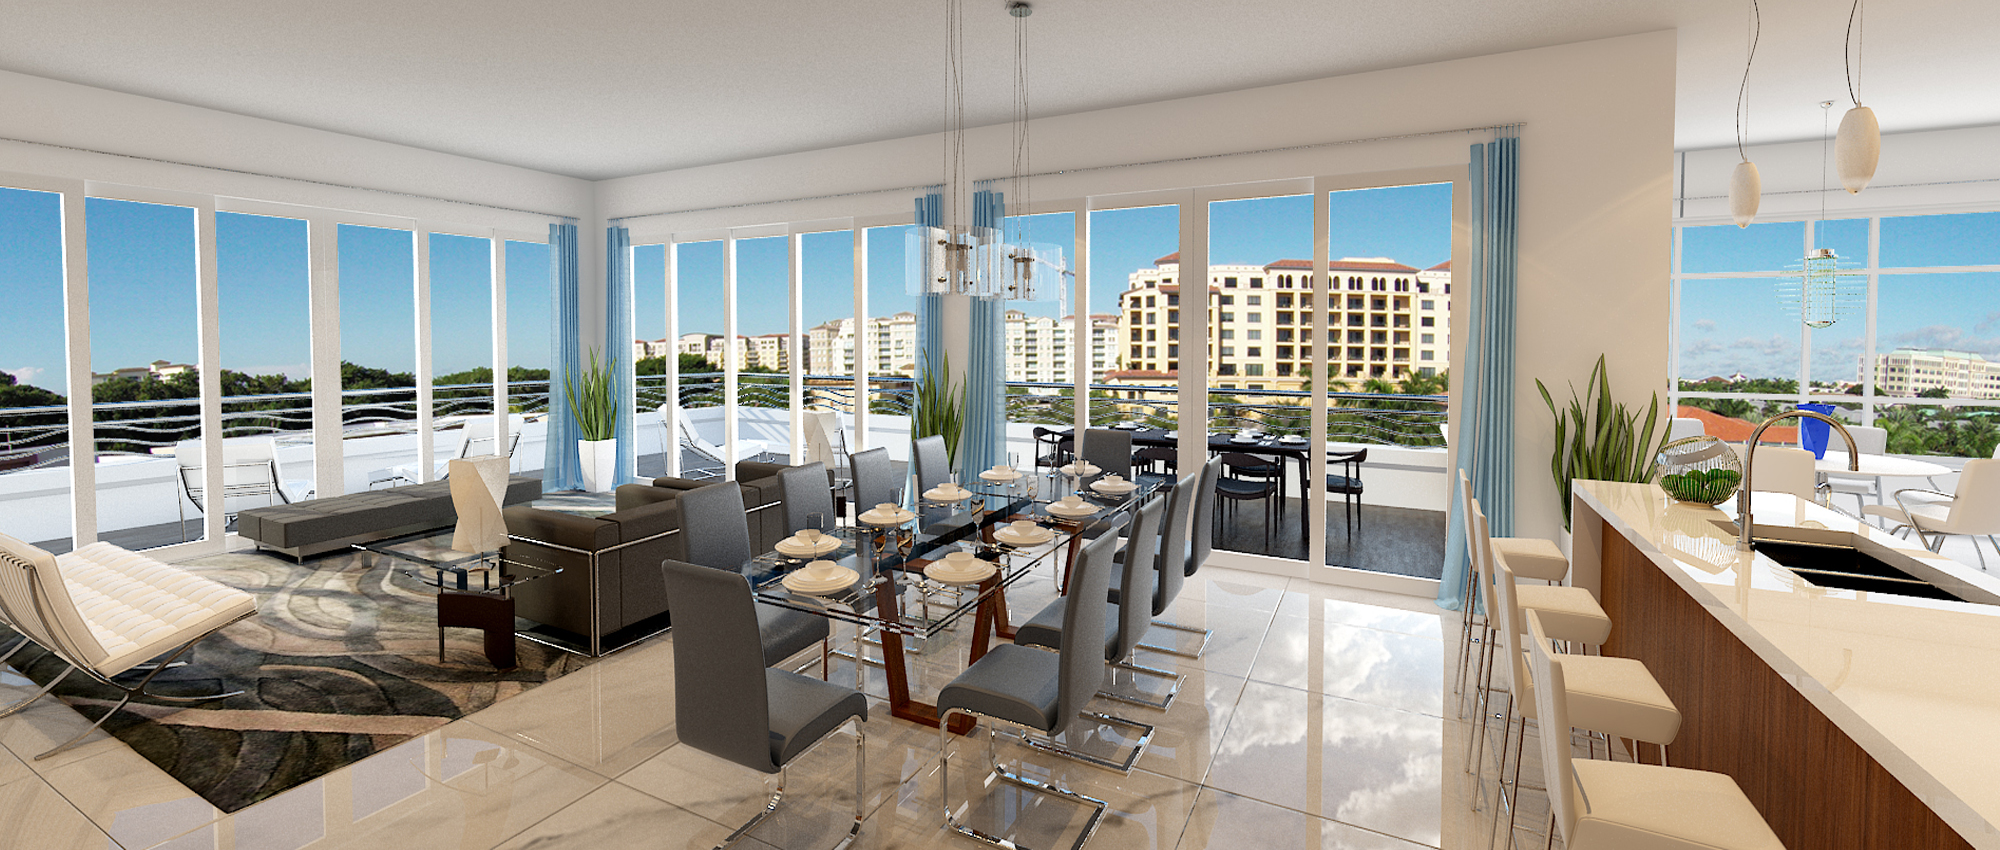 327 Royal Palm Condos for Sale